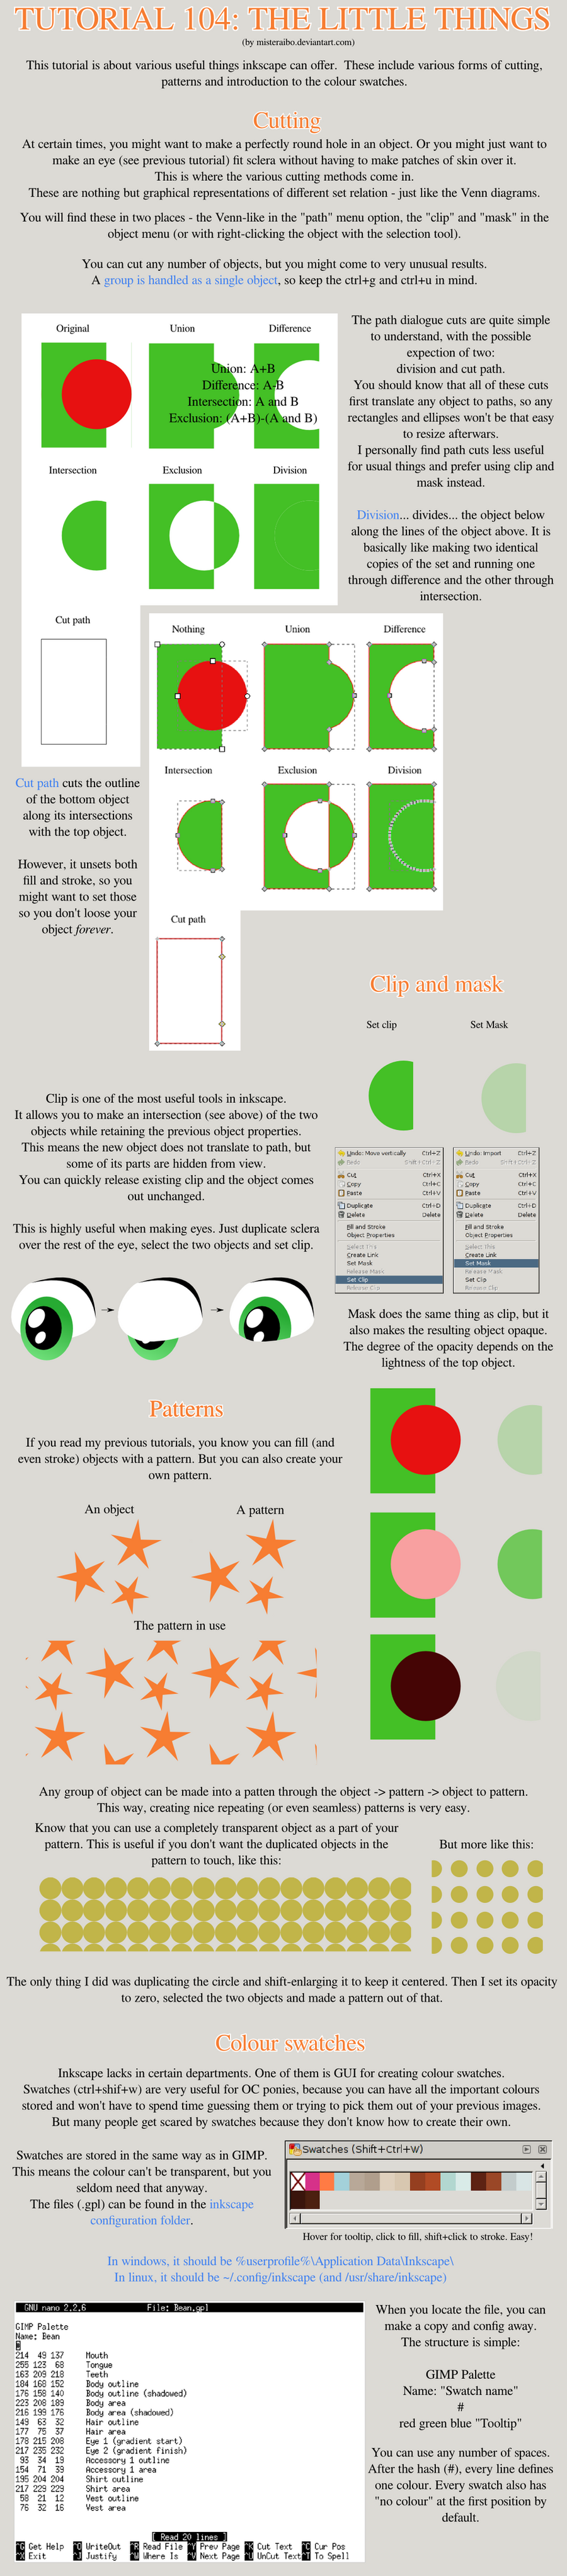 Tutorial 104: The Little Things by MisterAibo